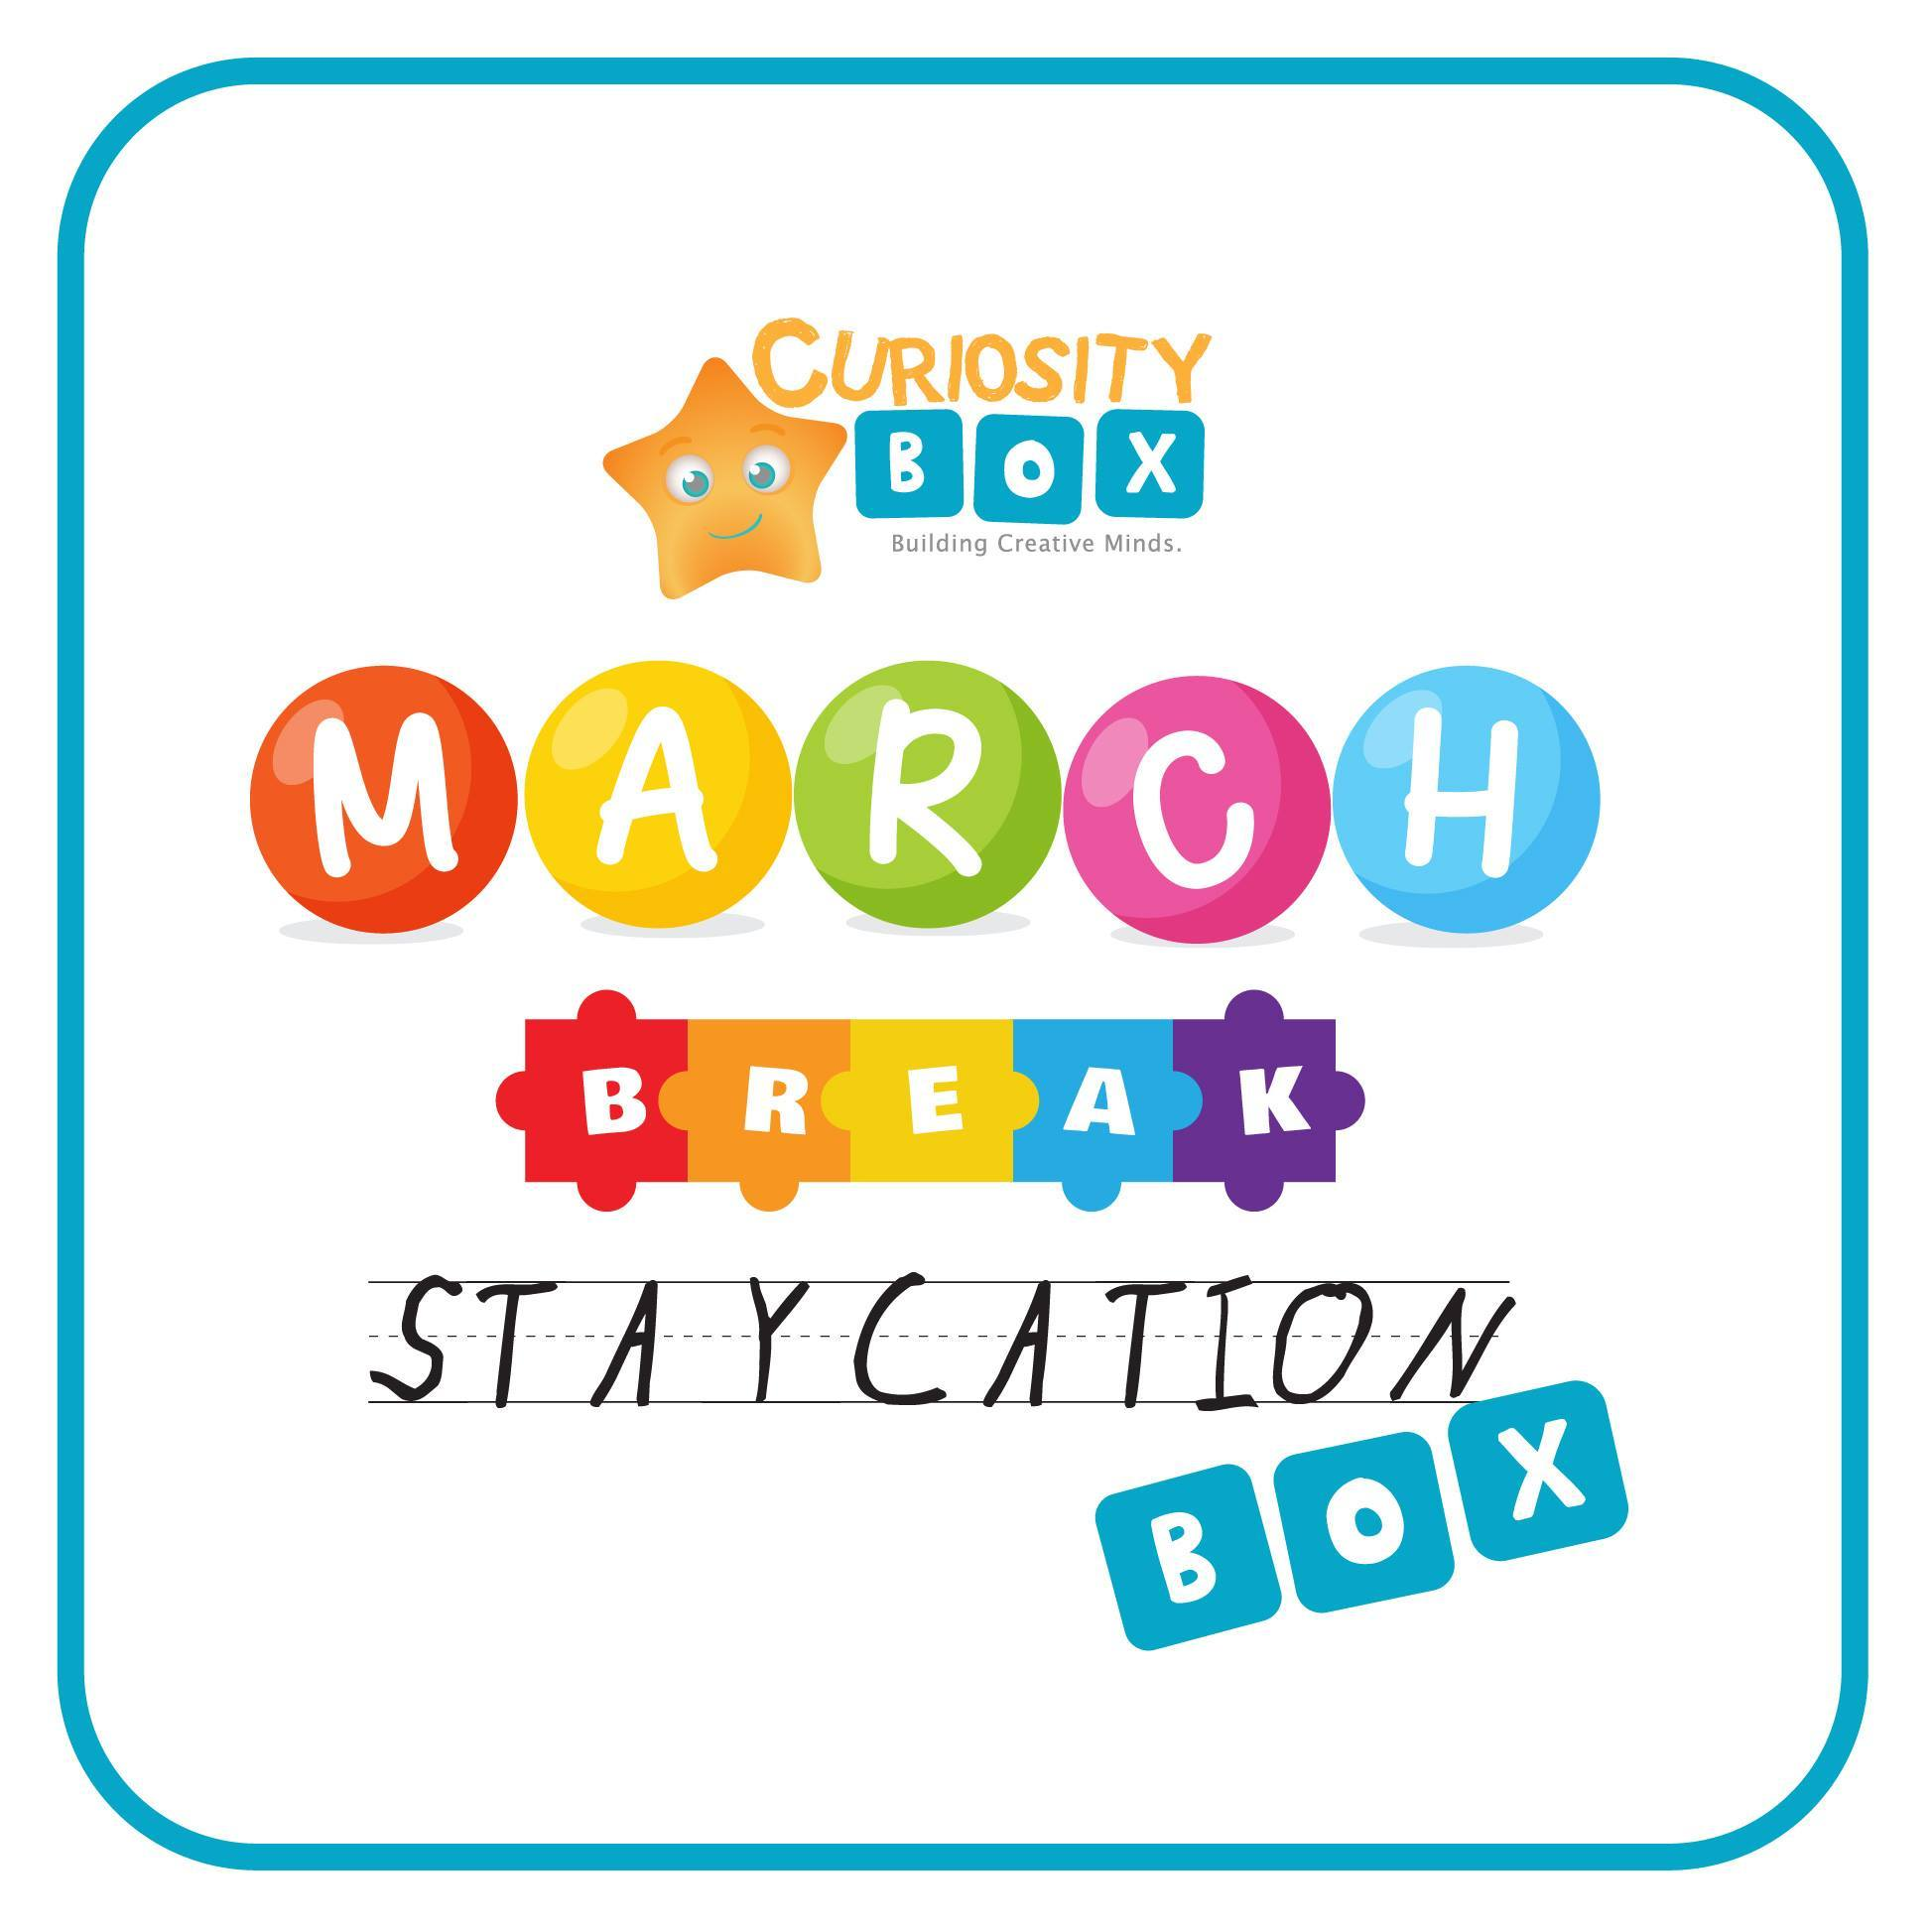 March Break Staycation Box Ages 2-4- Curiosity-Box-Craft-and-Educational-Boxes-Kids-Monthly-Subscription-Box